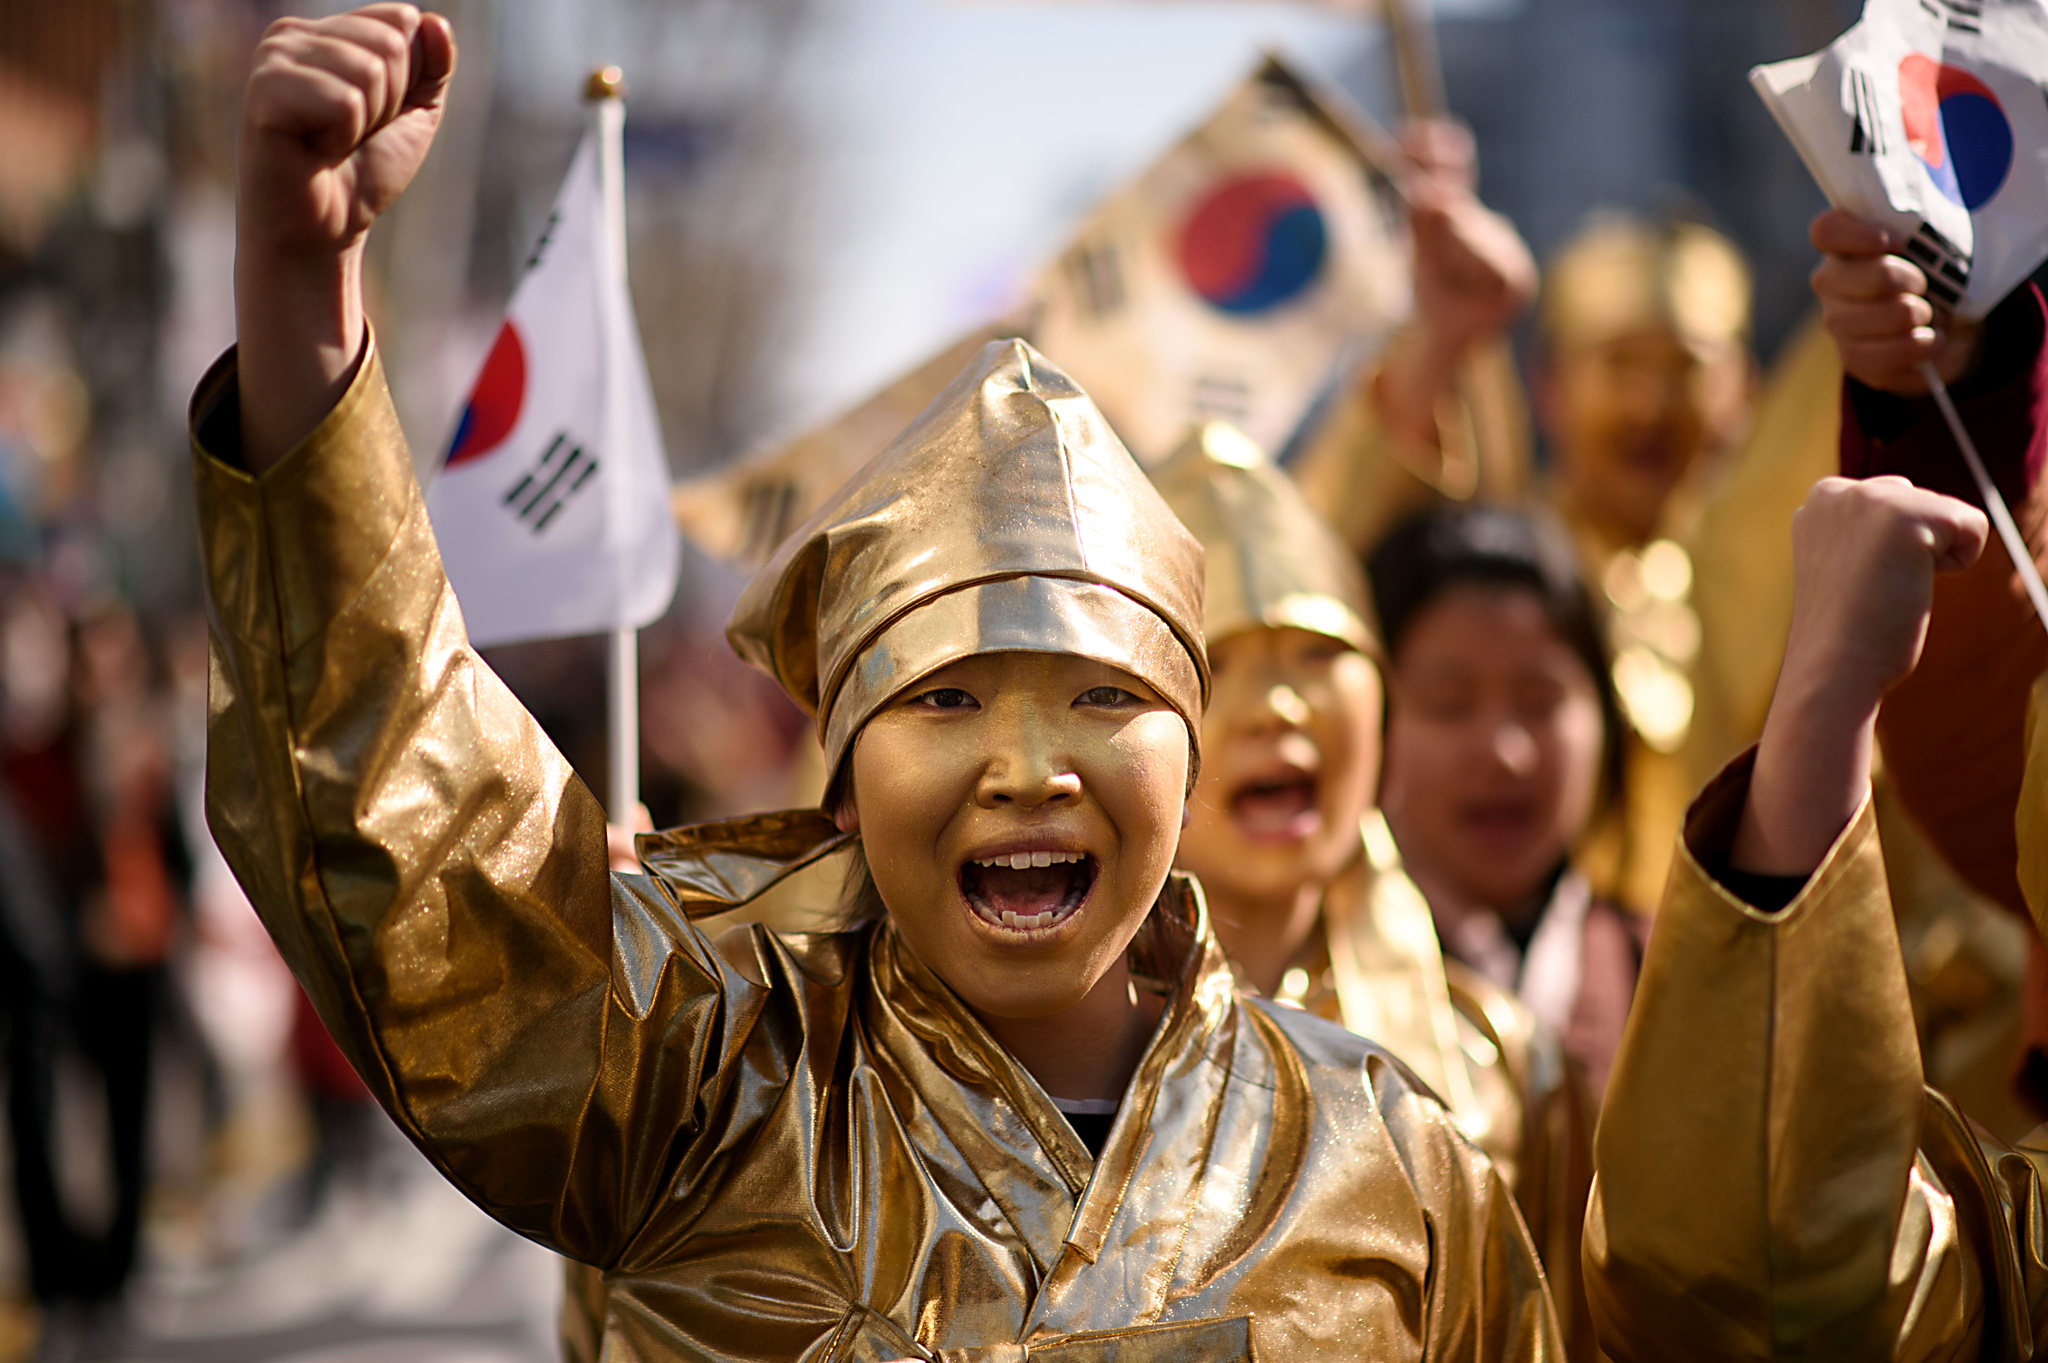 Activists dressed as South Korean dissid...Activists dressed as South Korean dissidents perform during an anti-Japan protest marking the 97th Independence Movement Day in Seoul on March 1, 2016. South Korea was marking the anniversary of the country's 1919 uprising against the 1910-1945 Japanese colonial rule. AFP PHOTO / Ed JonesED JONES/AFP/Getty Images